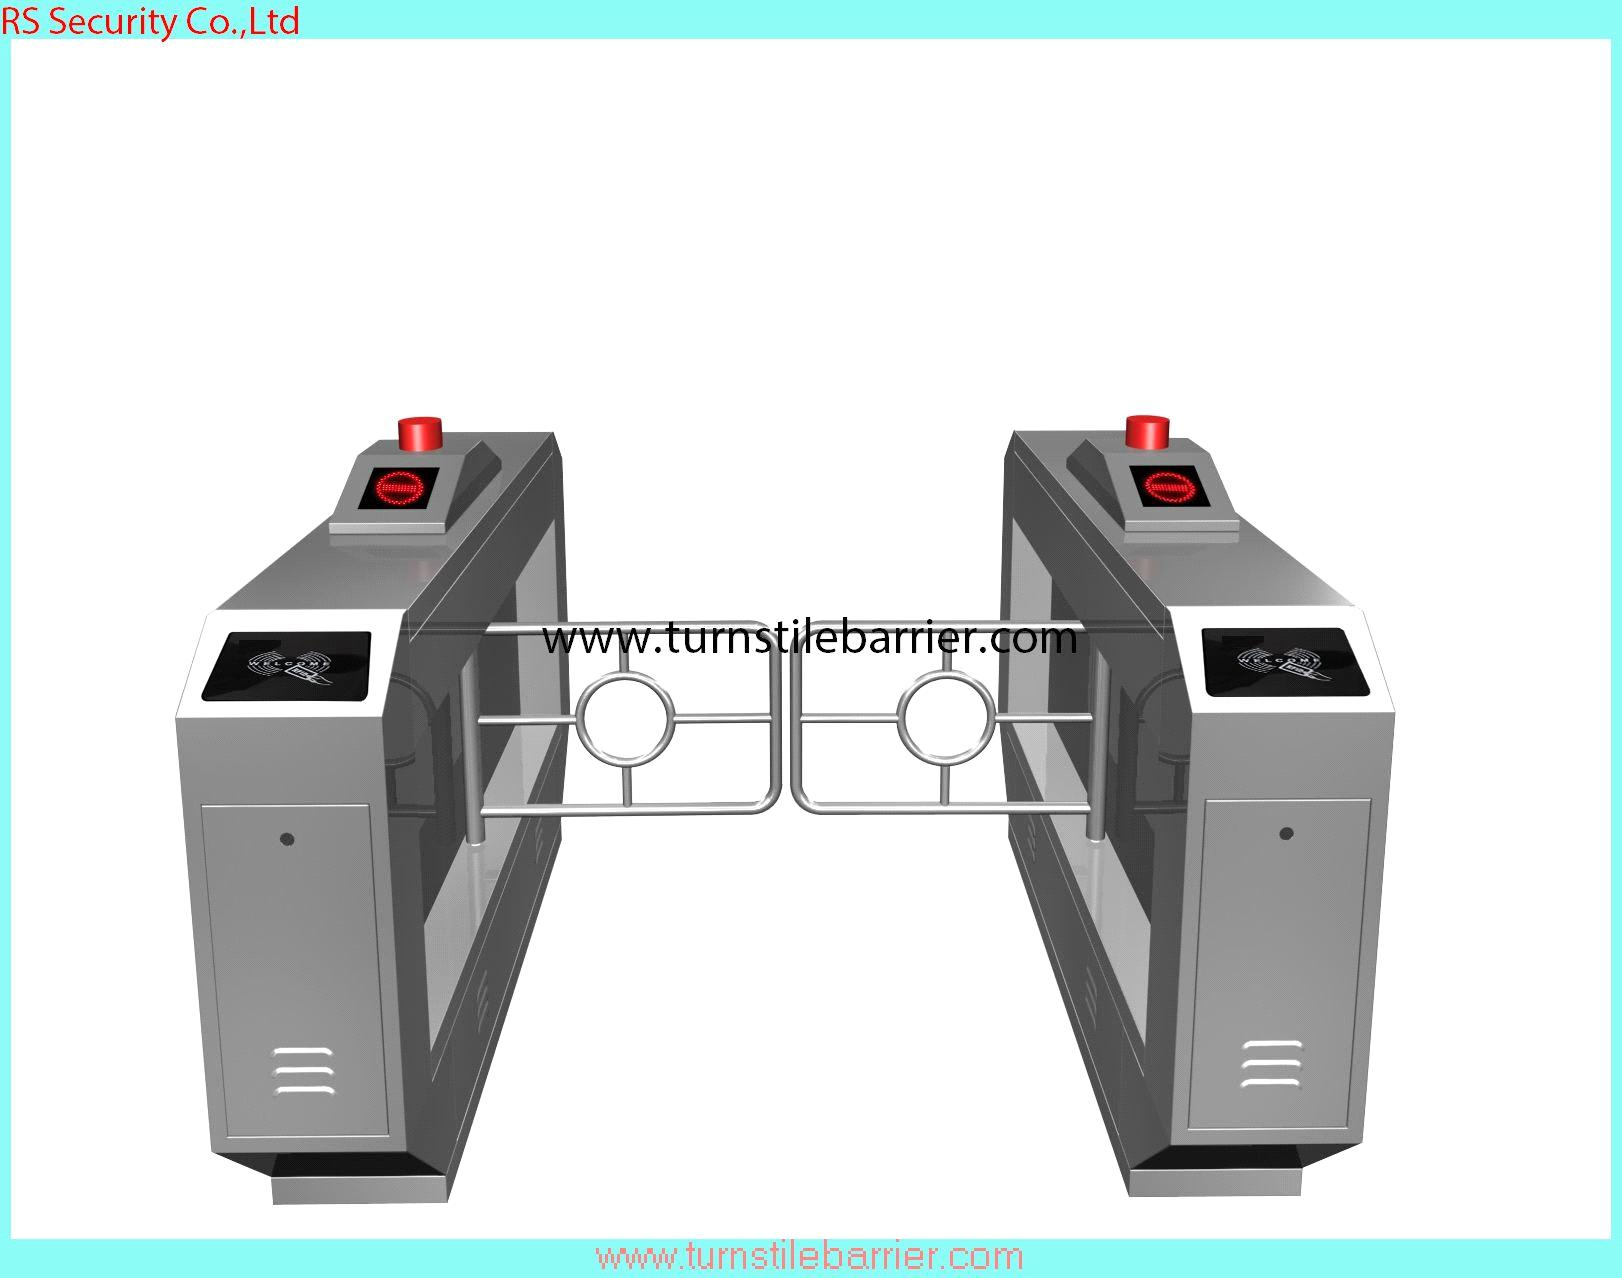 Electronic turnstile barrier security swing gate